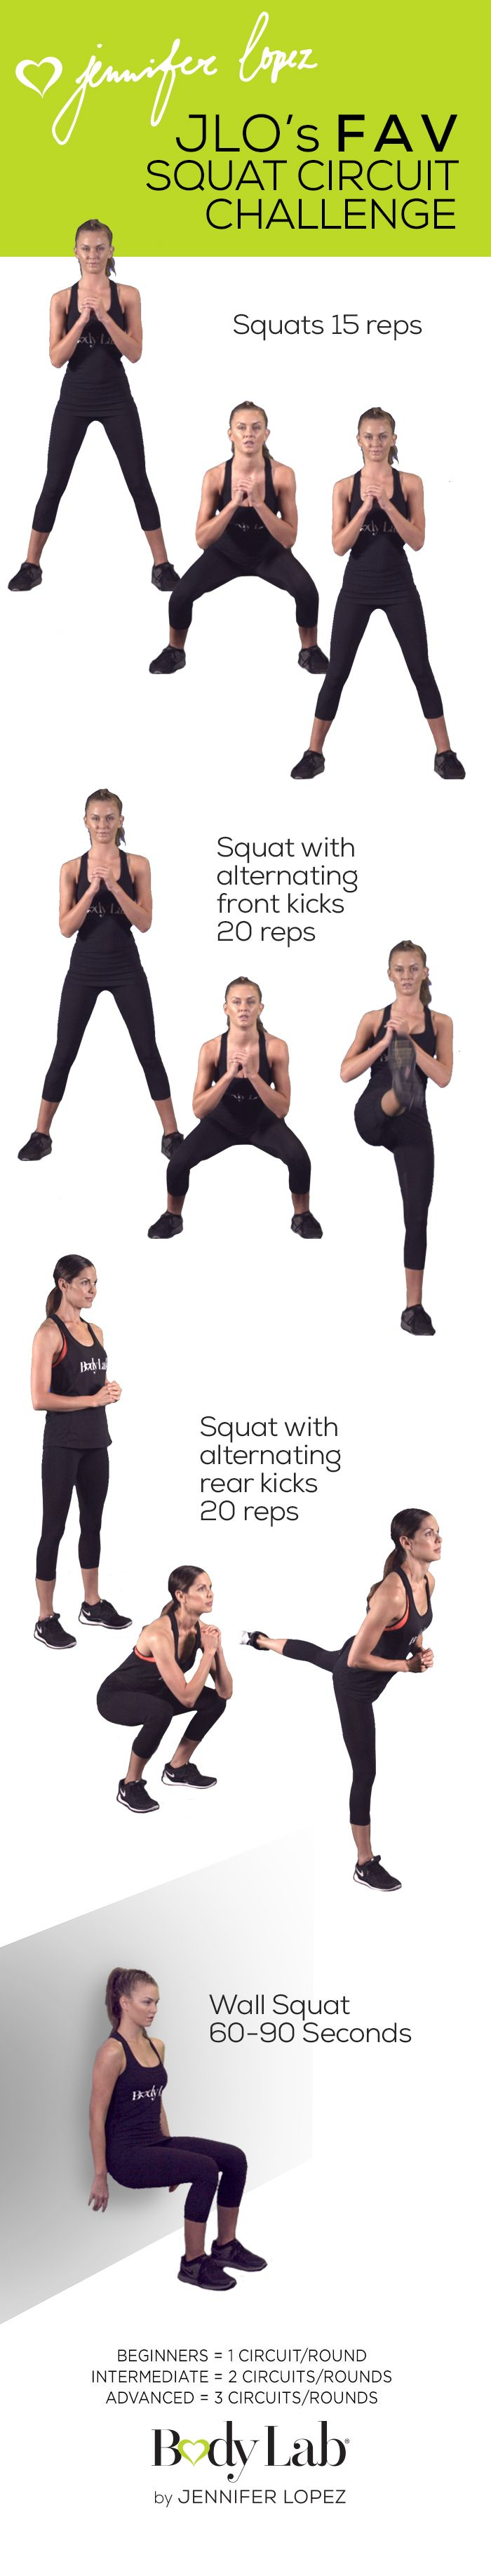 We know you want in on Jennifer Lopez's favorite workouts. Check out her favorite Squat Circuit Challenge! #‎BeTheGirl‬